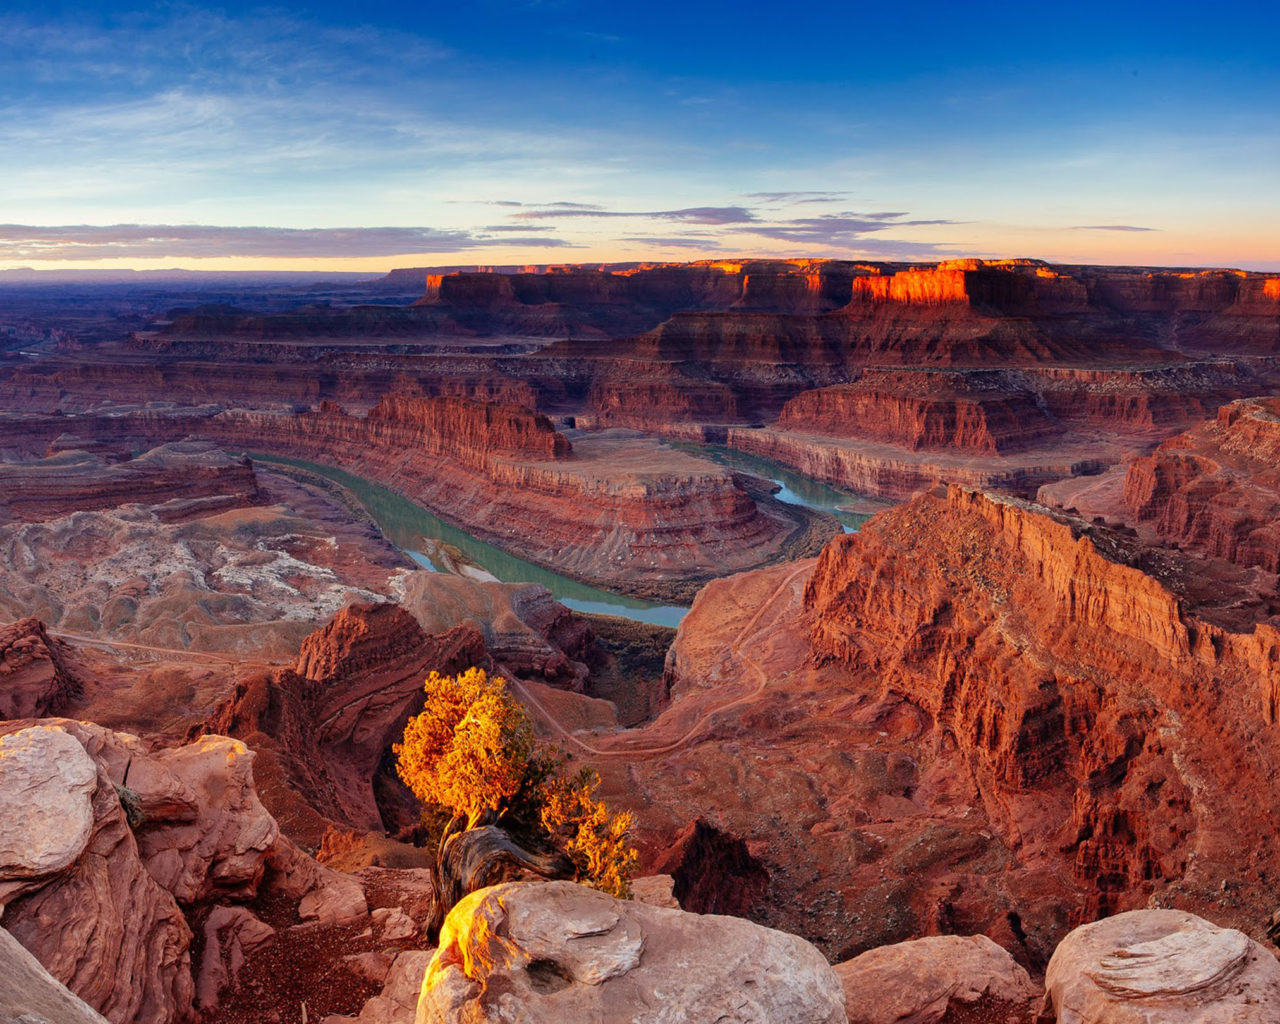 High Resolution Wallpaper Fall Desert Sunrise Scenery Canyonlands National Park Utah